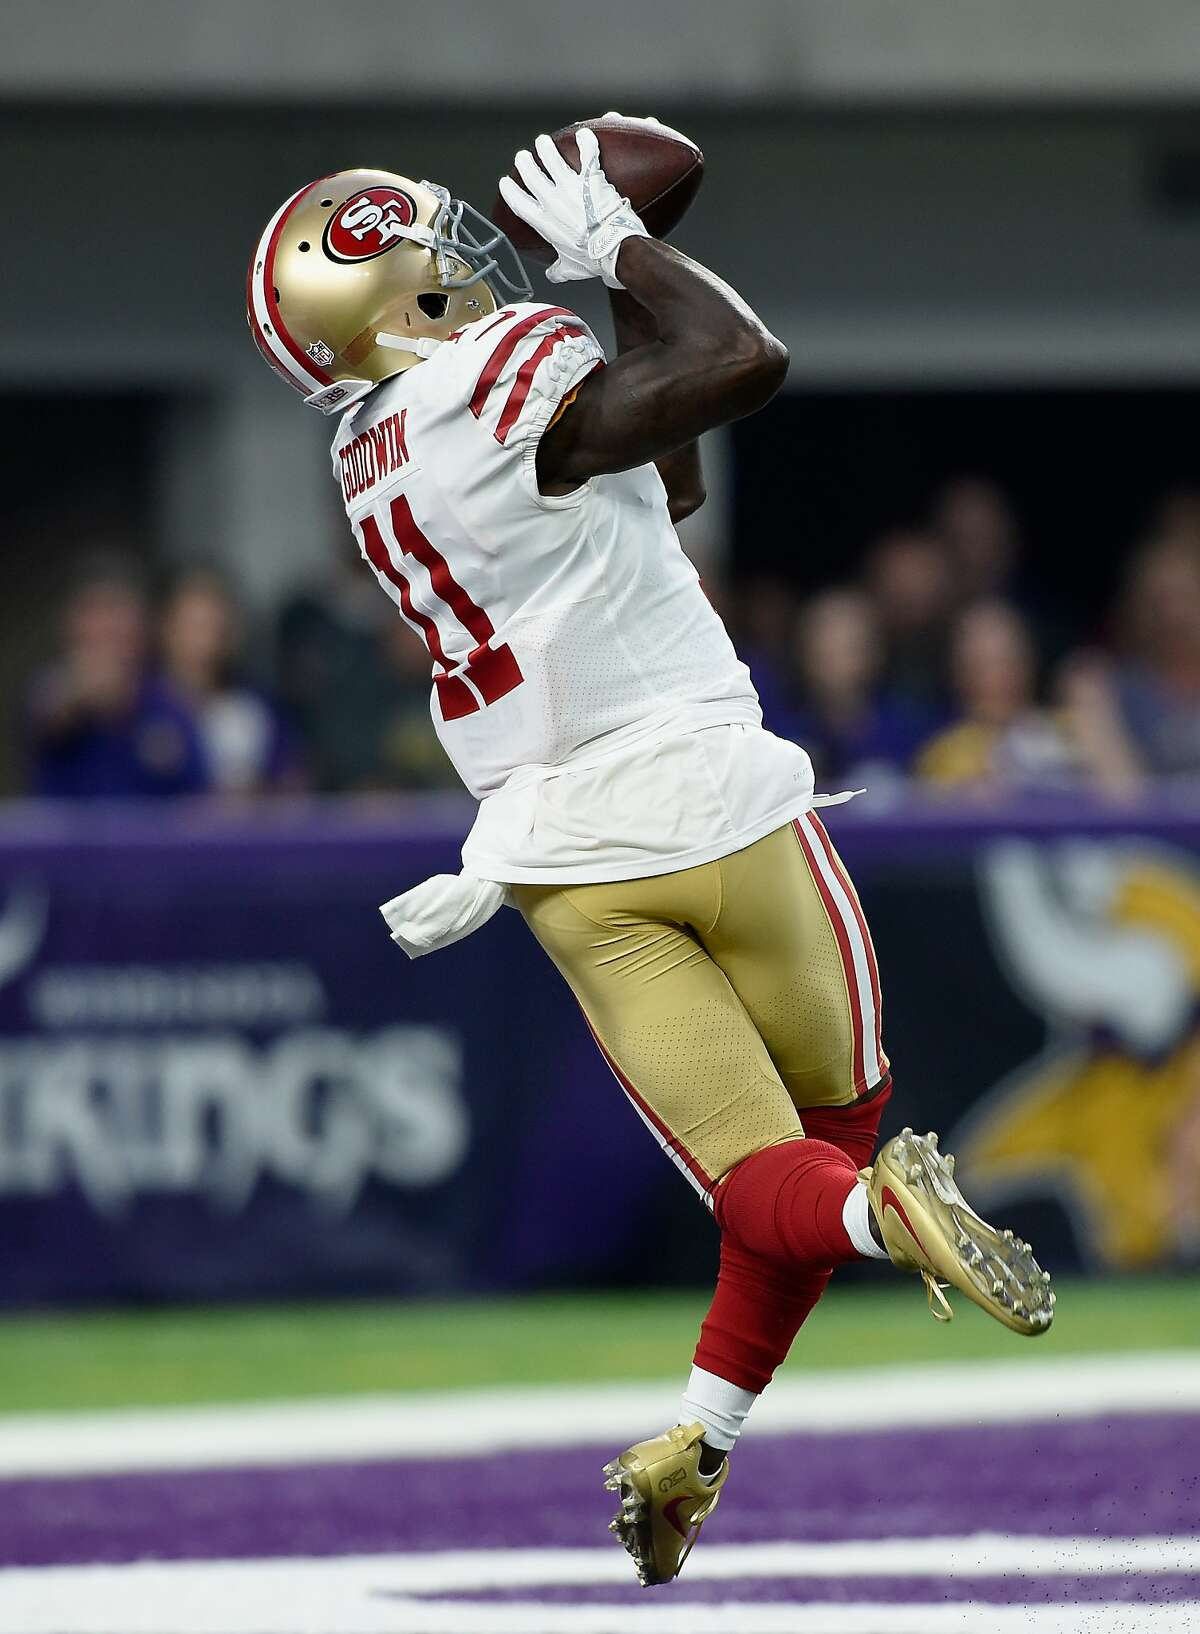 MINNEAPOLIS, MN - AUGUST 27: Marquise Goodwin #11 of the San Francisco 49ers makes a catch of the ball for a touchdown against the Minnesota Vikings during the first quarter in the preseason game on August 27, 2017 at U.S. Bank Stadium in Minneapolis, Minnesota. (Photo by Hannah Foslien/Getty Images)